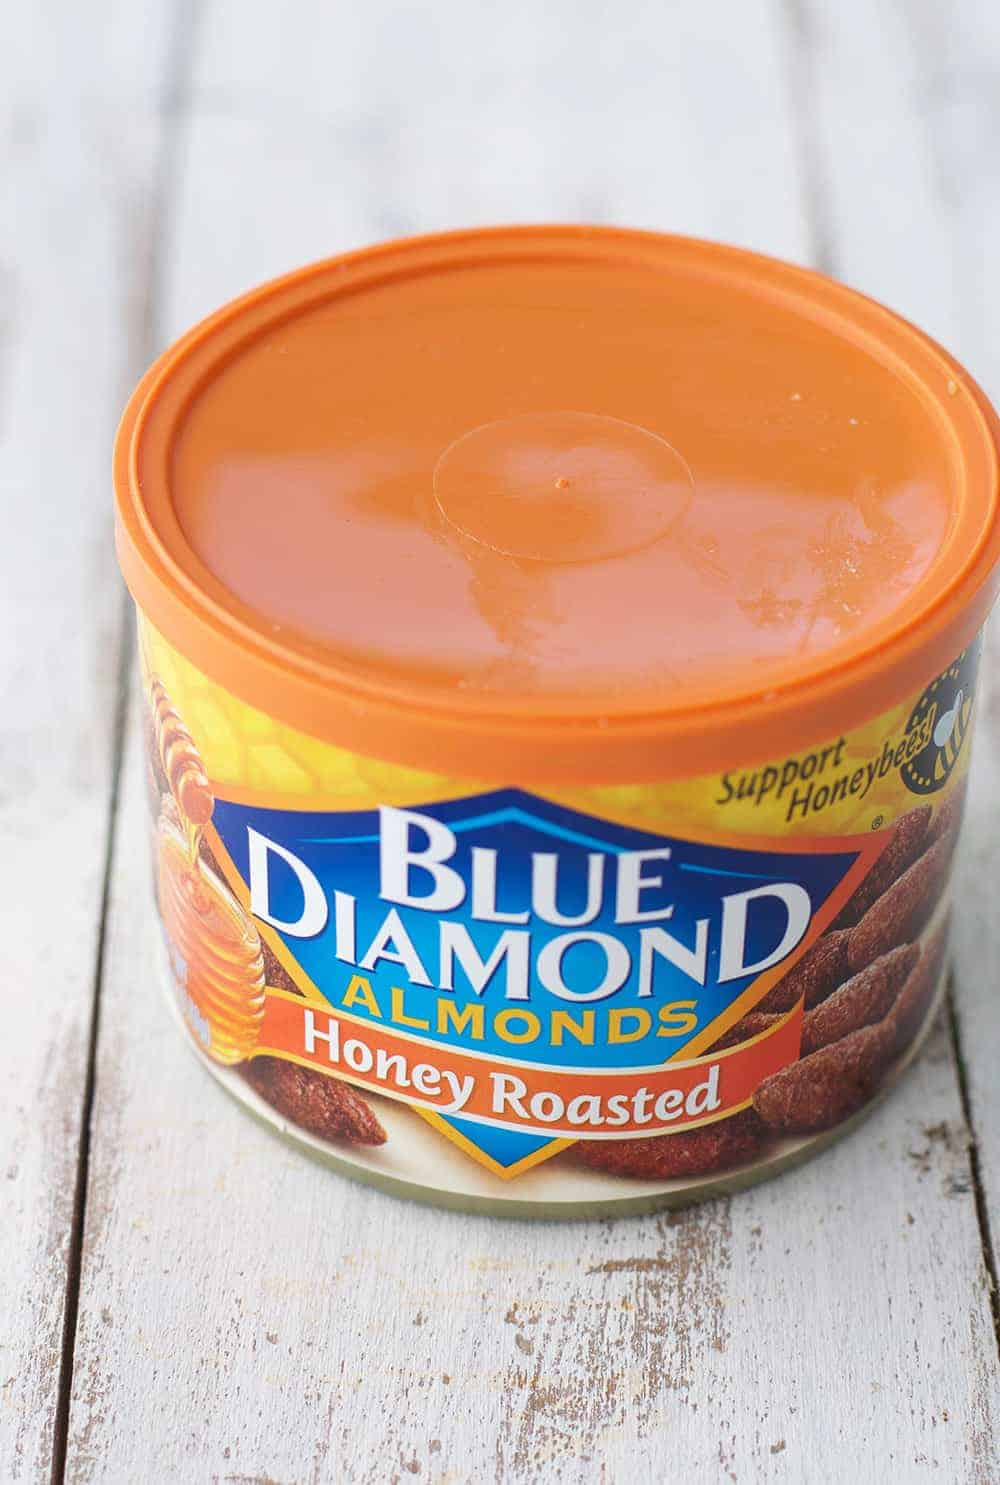 bluediamondalmonds